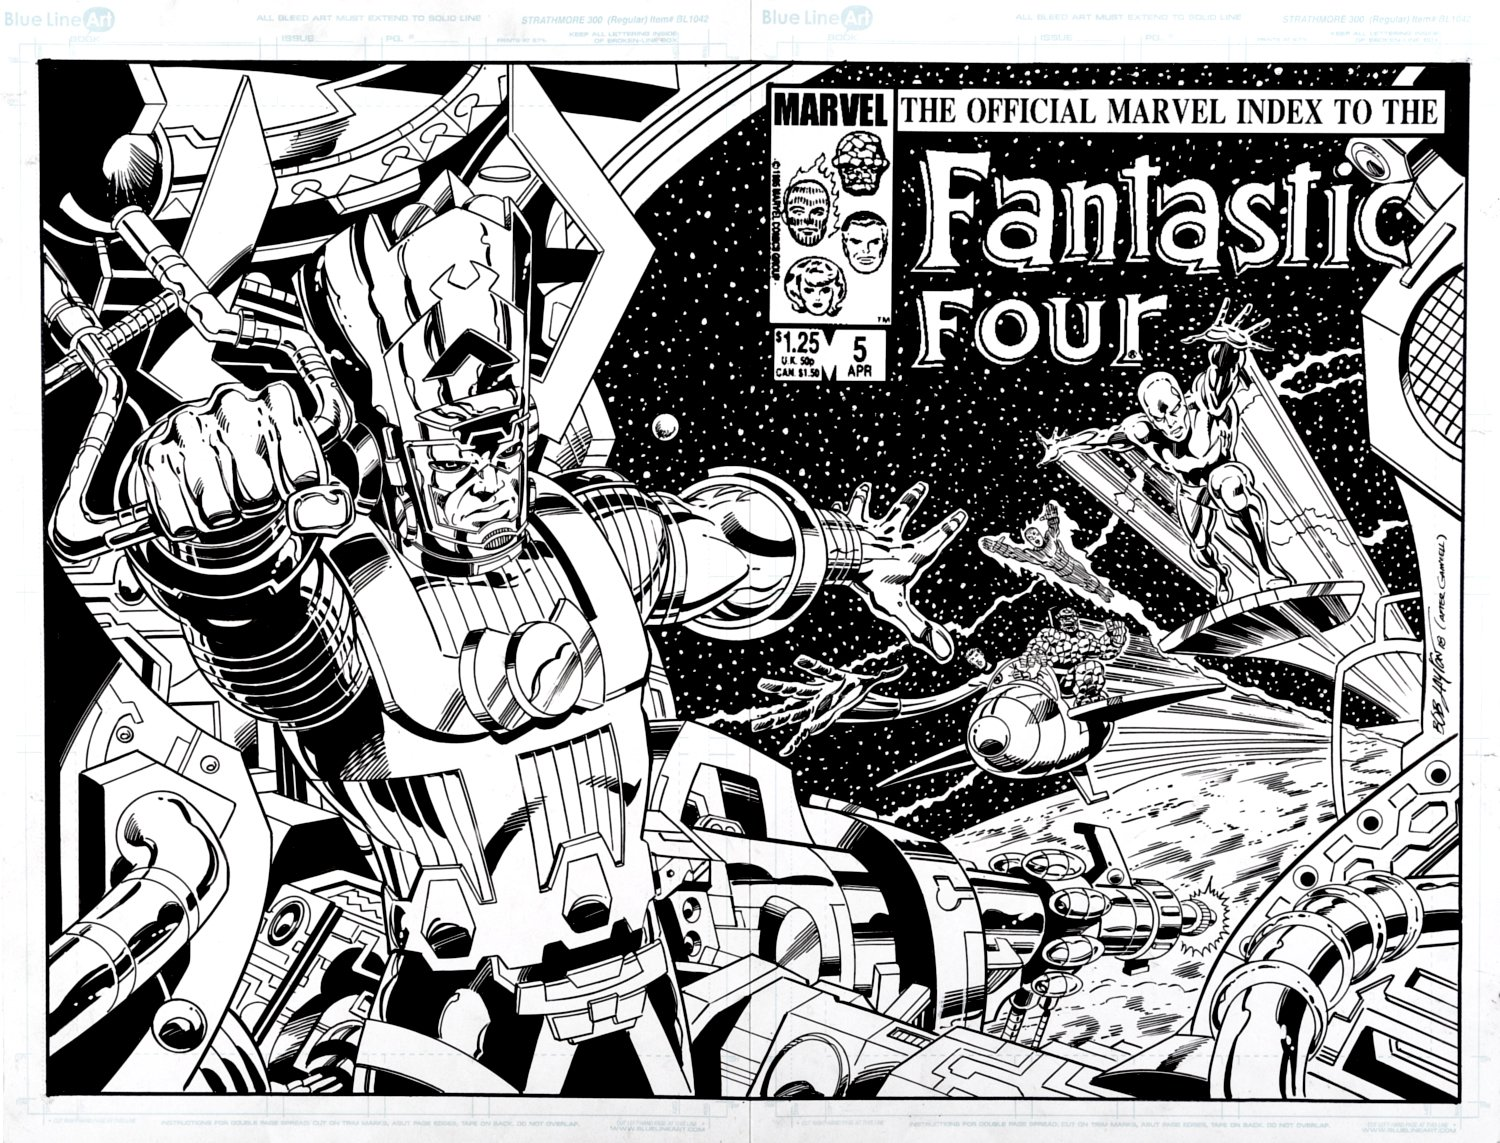 Official Marvel Index To The Fantastic Four #5, Galacatus & Silver Surfer! Wraparound Cover Recreation (2018)